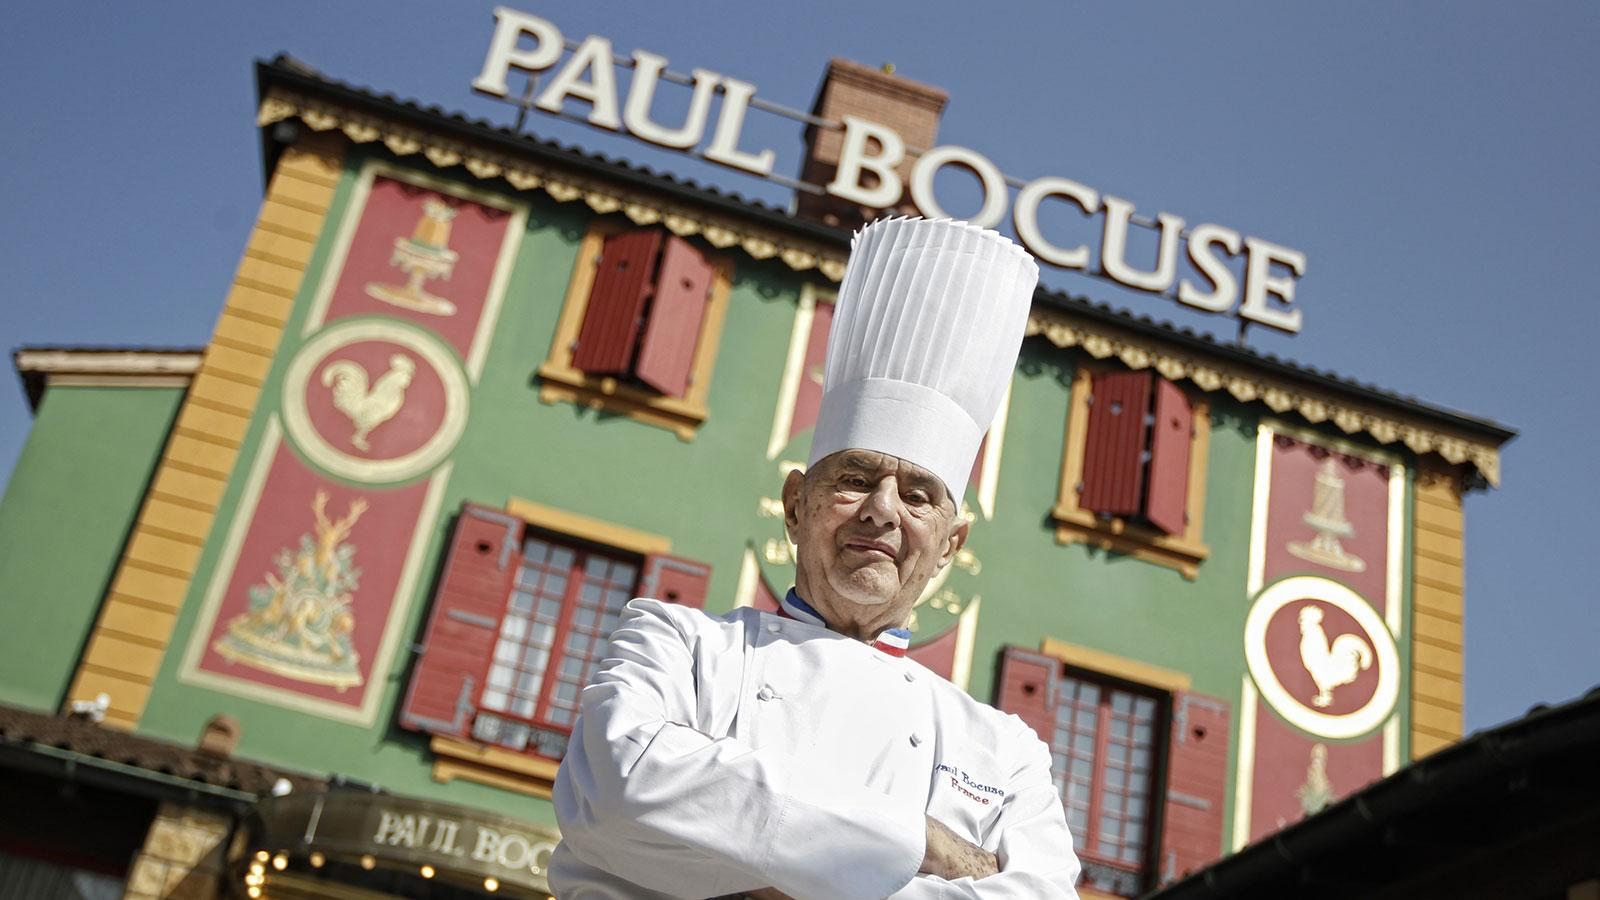 Chef Paul Bocuse's powerful personality expressed itself in his Lyon-area restaurant's eye-catching exterior.